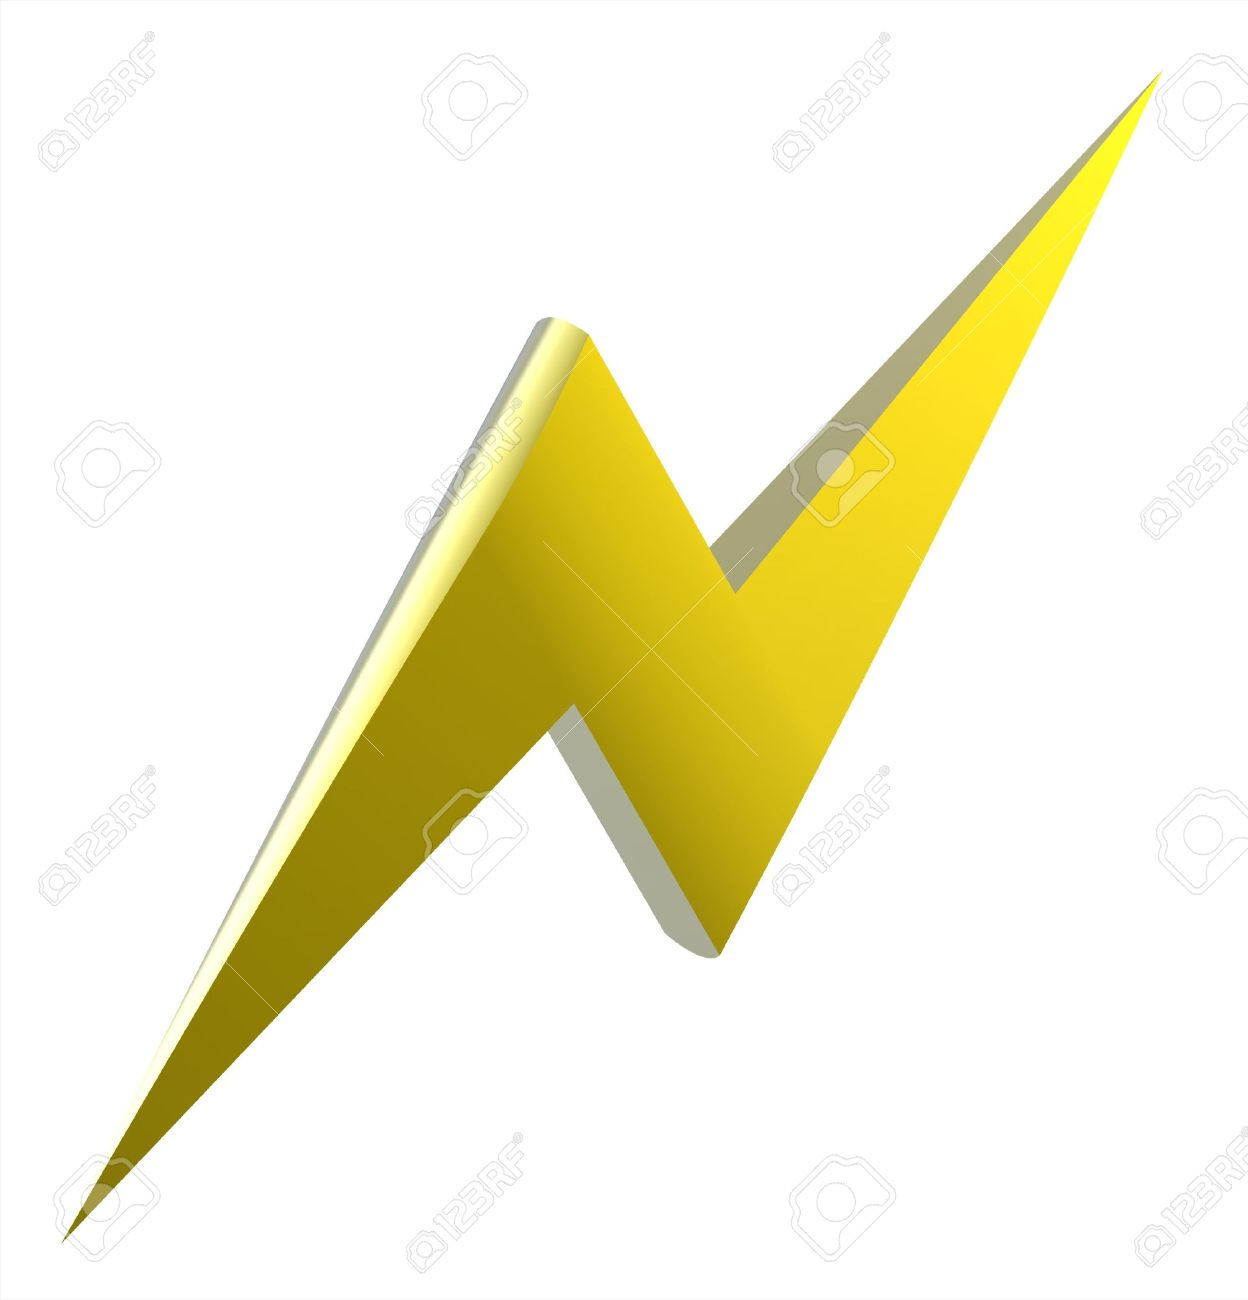 Power or high voltage hazard 3D sign Stock Photo - 6127221